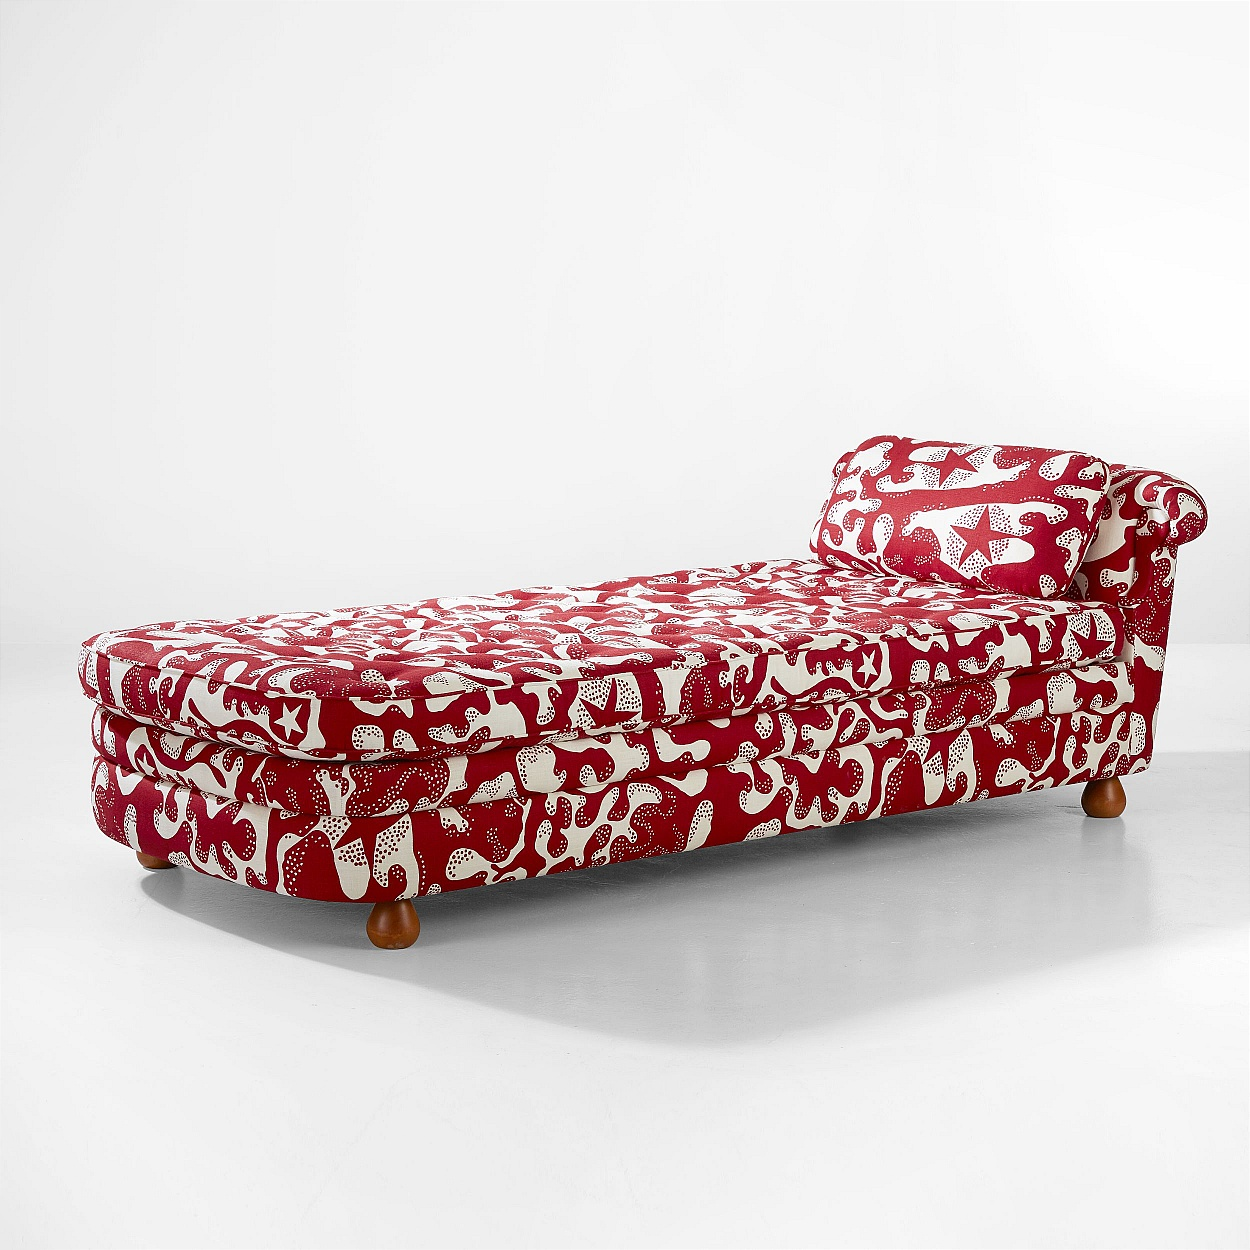 Josef Frank, couch for Svenskt Tenn